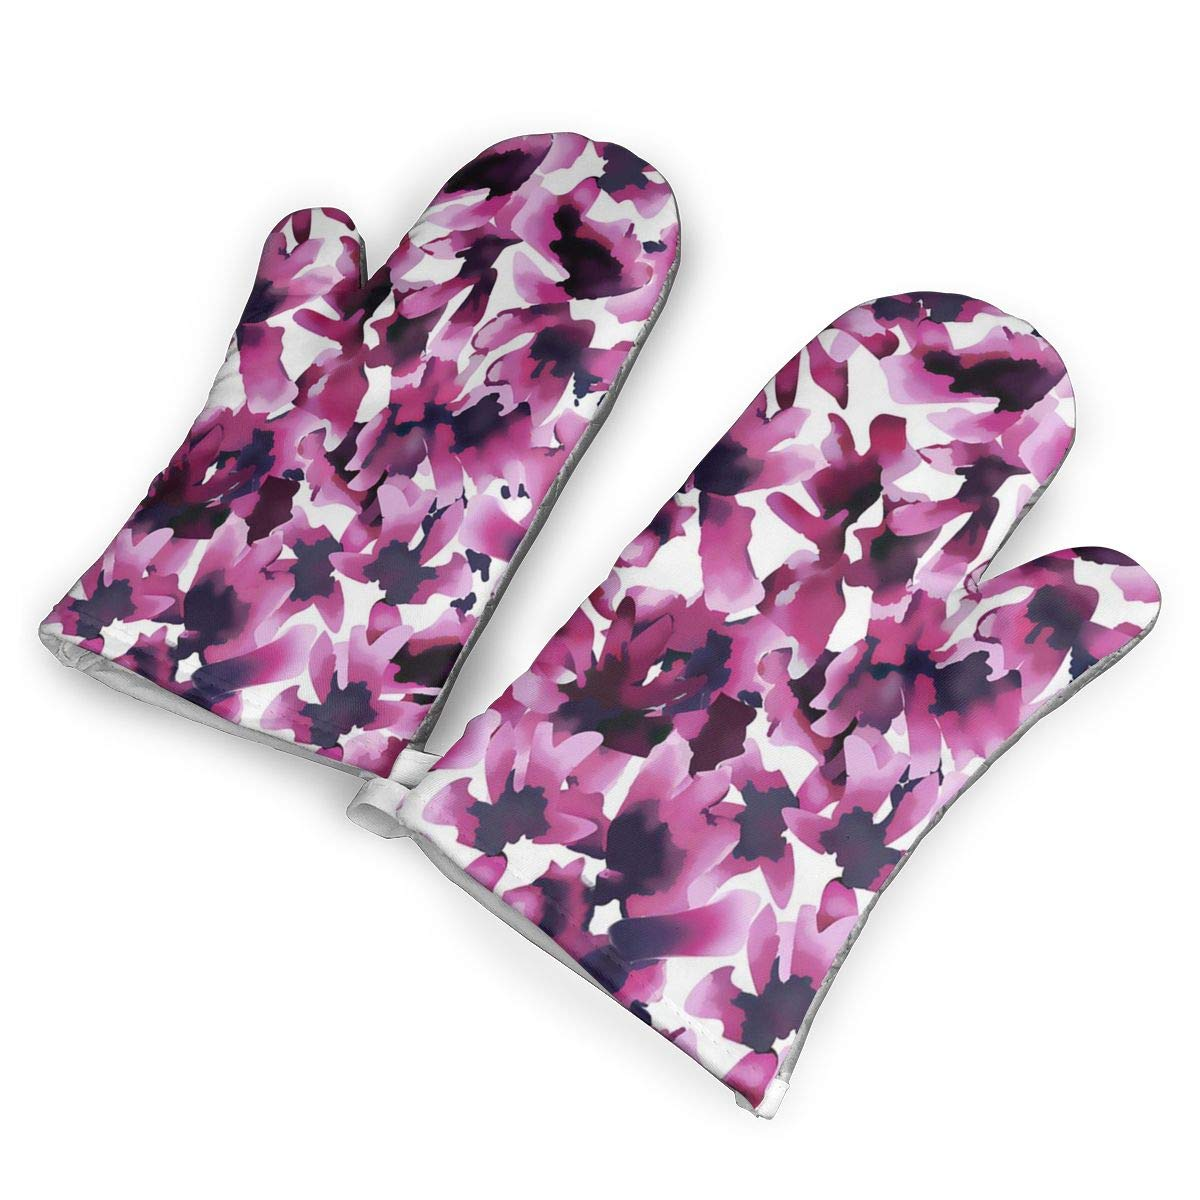 RACPIEC Oven Mitts 1 Pair of Quilted Cotton Lining Heat Resistant Kitchen Gloves Halo Pattern